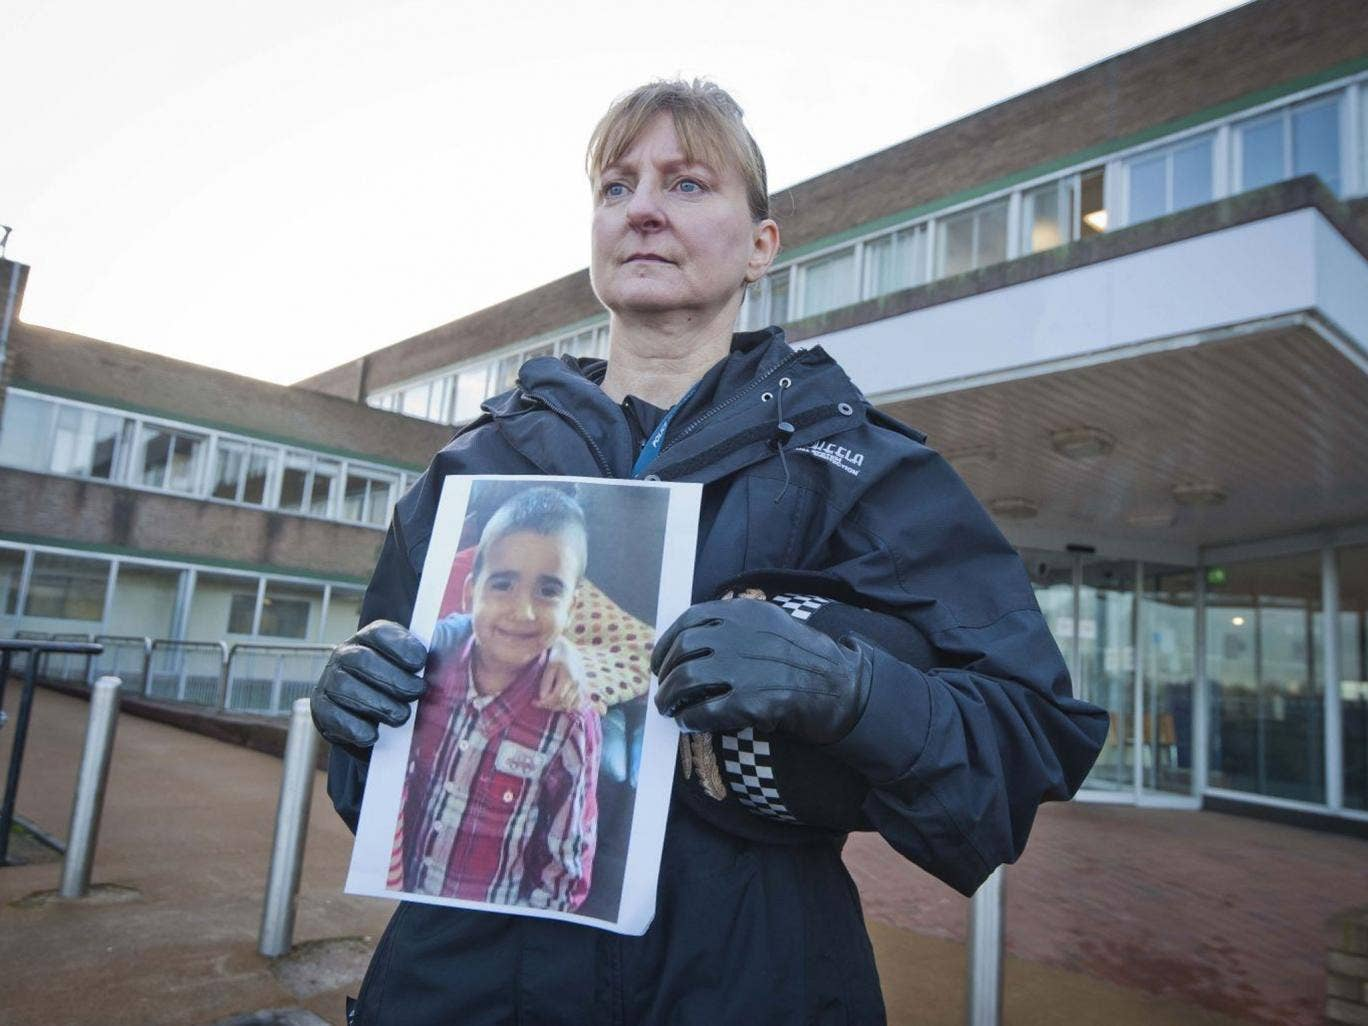 Superintendent Liz McCainsh holds a photo of missing 3-year-old boy Mikaeel Kular who was last seen going to bed at his family's flat, at around 9pm and was discovered missing from his bed by his mother at around 7.15am when the family woke up